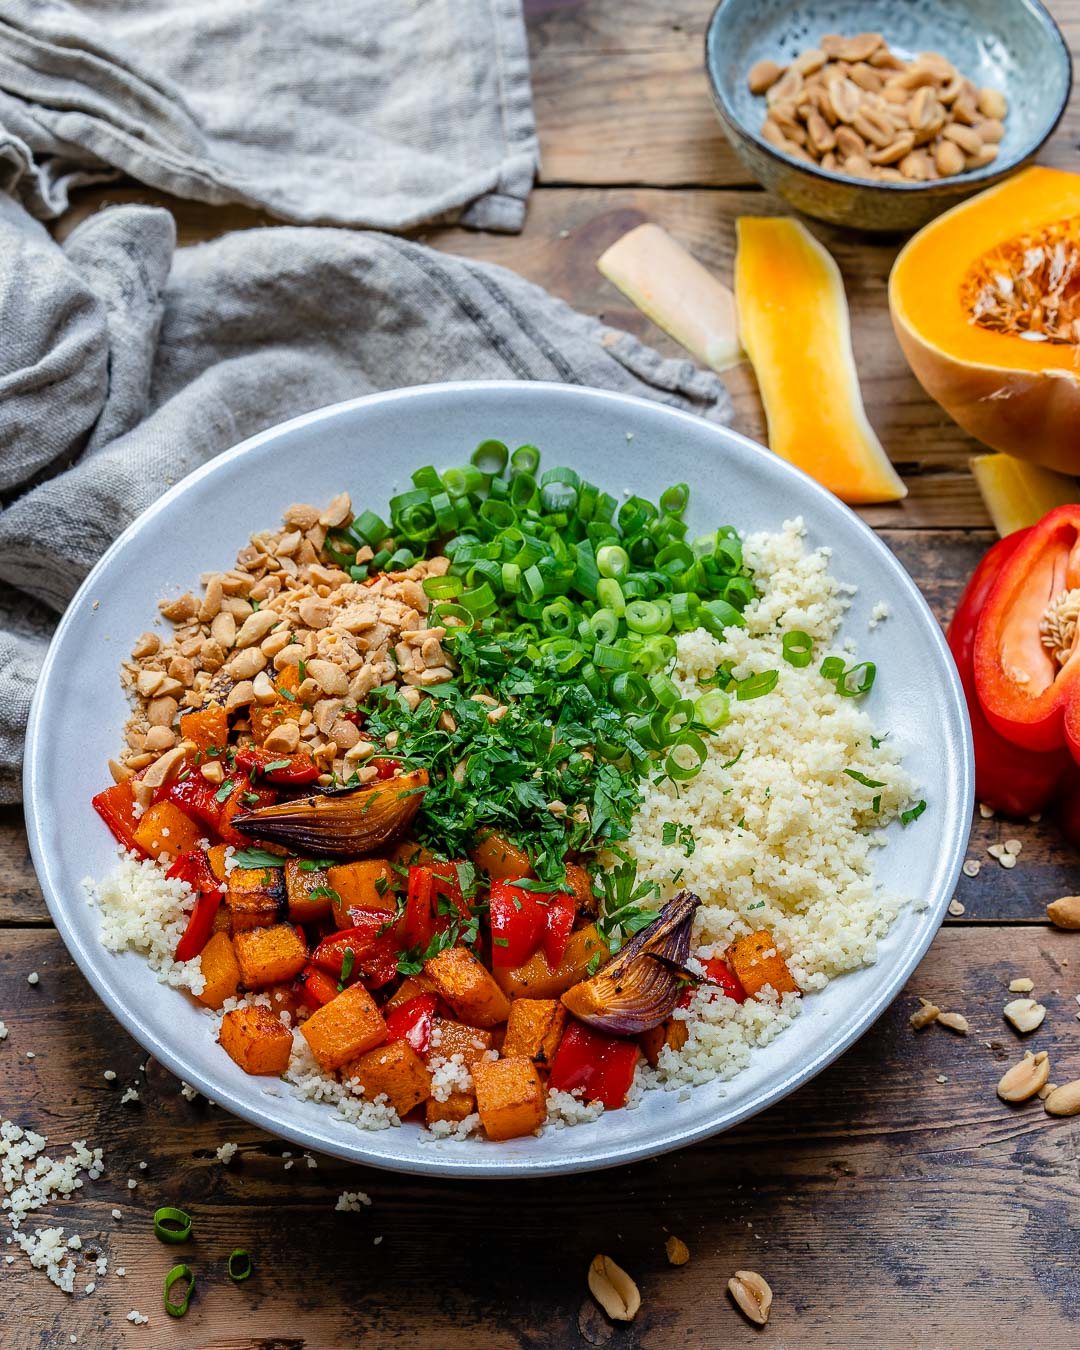 Vegan Couscous Salad With Roasted Veggies Recipe-6